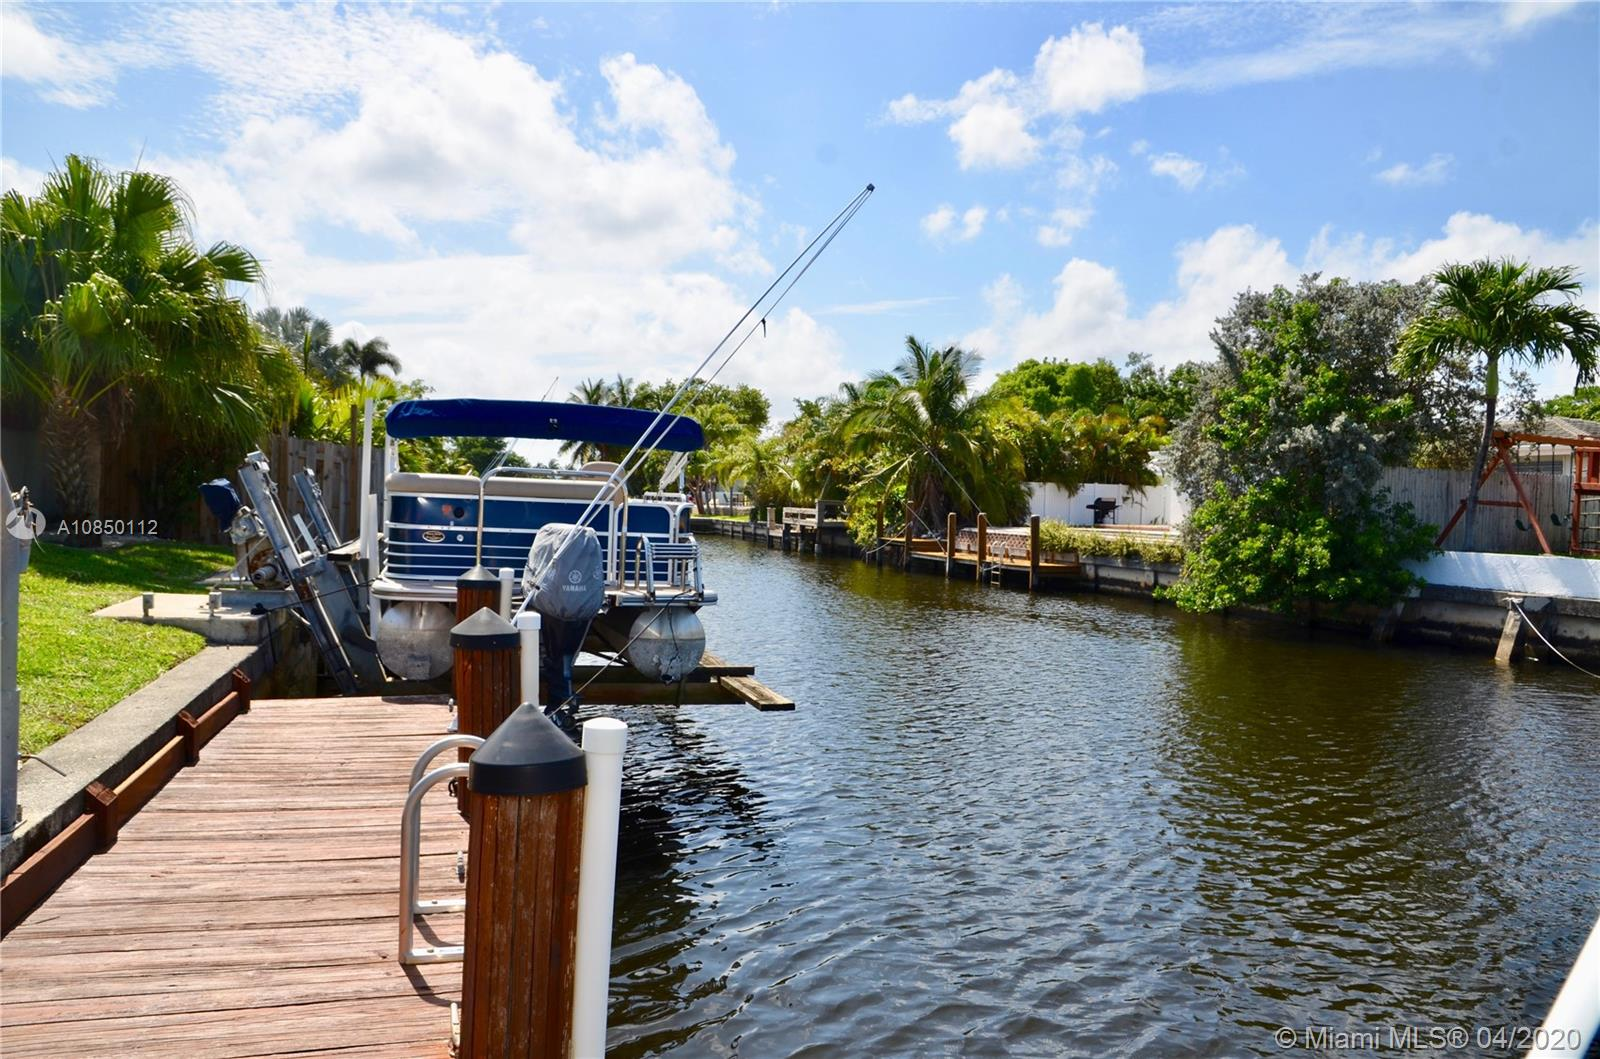 New on the market, a boaters dream house in Fort Lauderdale's Waterways! This 4 bedroom, 2 bathrooms has 75' waterfront on a deep water canal with a full service 29' dock, a boatlift and a pool. The open floor plan with 1,800sf will let you see the pool and the waterways from your living and your dining room. Open the new impact doors from your living area to relax in your screened extra large Florida room at his best (another 485sf). The Florida beach lifestyle! Tile floor throughout, new windows & doors, stainless steal appliances, master bathroom remodeled, and more exterior features like the carport, shed and utility room. Take your boat and go to the ocean, 3 fixed bridges. Dont wait, priced to sell fast!